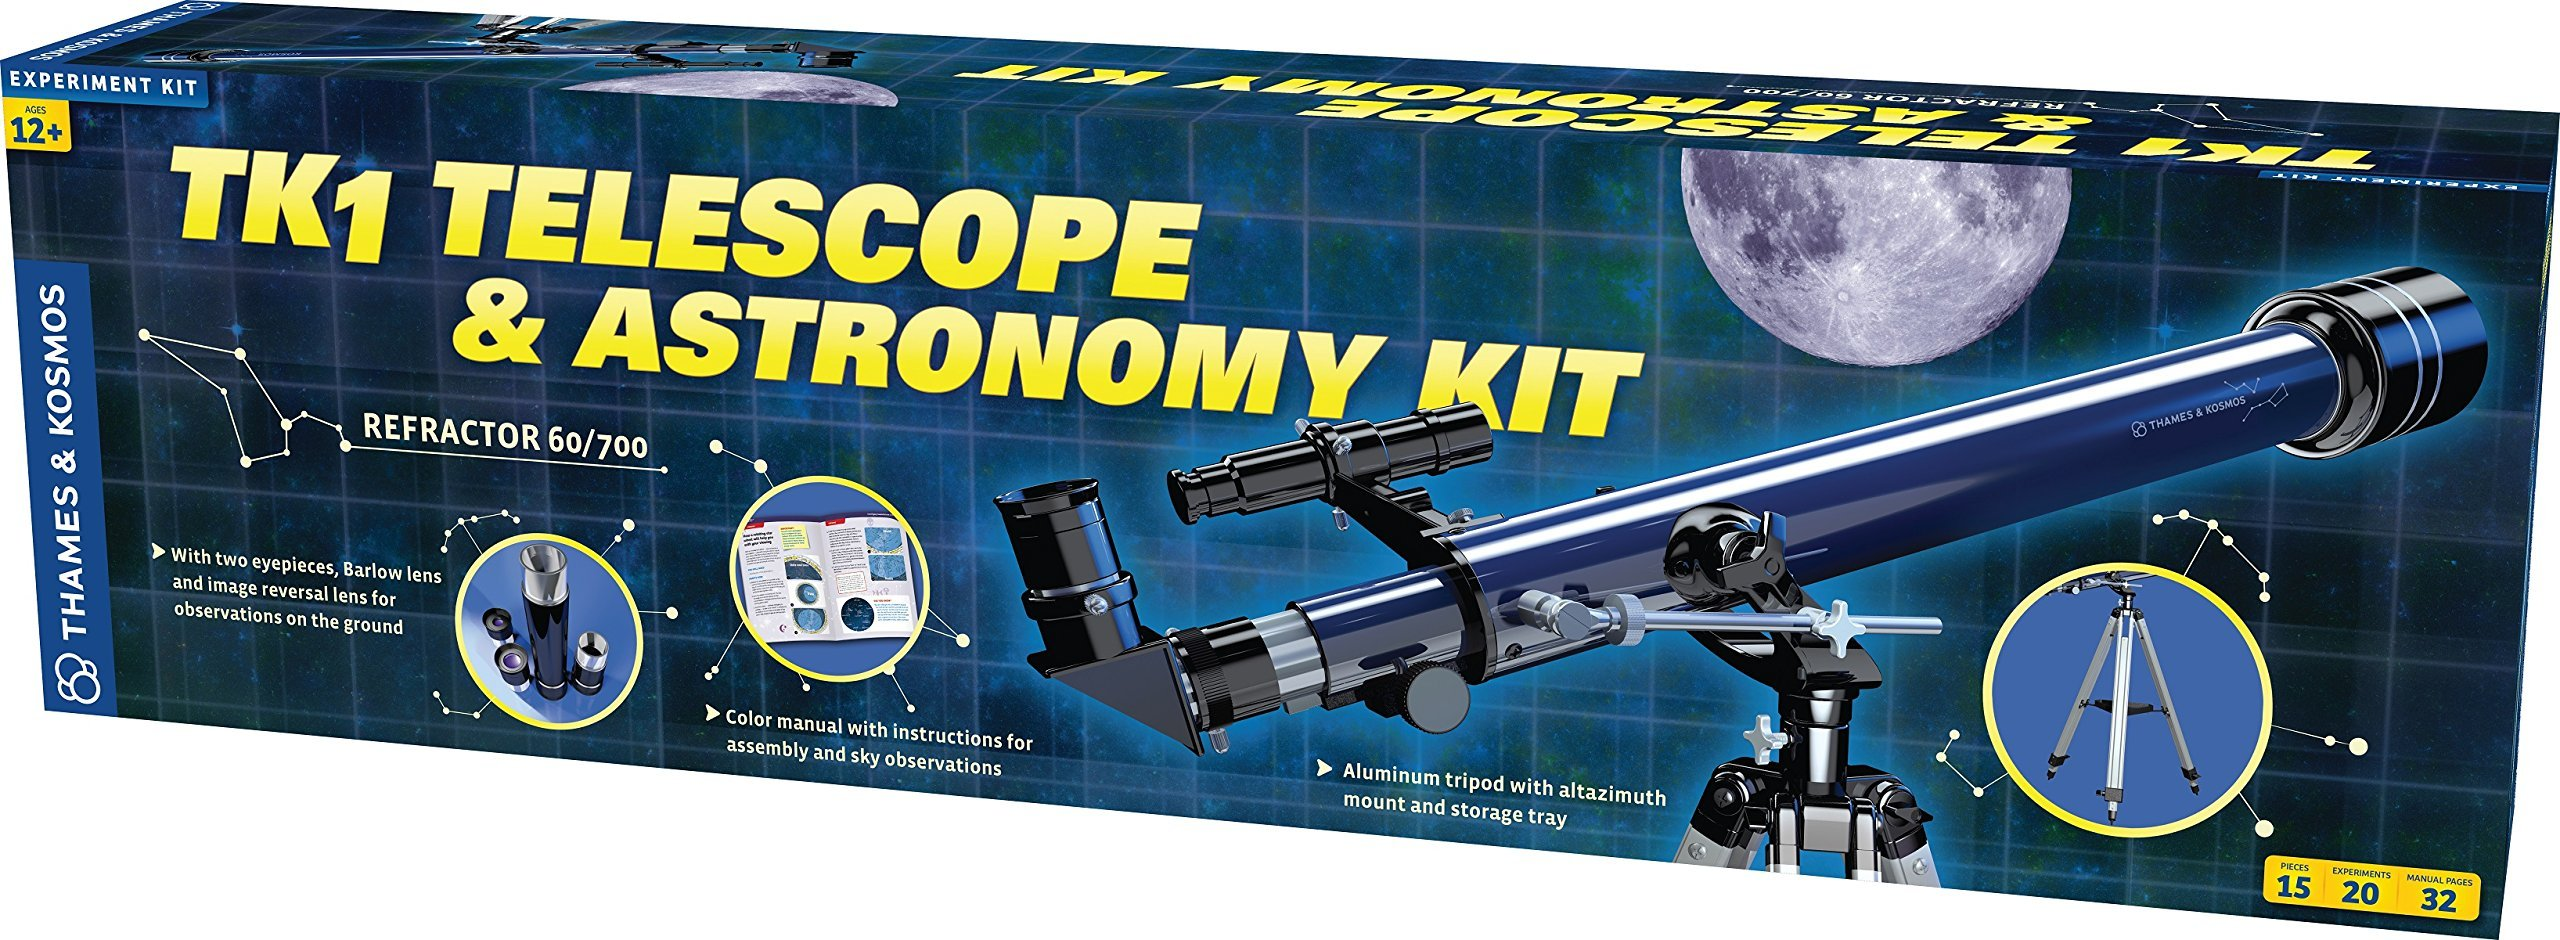 Thames & Kosmos TK1 Telescope Plus Astronomy Educational Science Kit | Refractor 60/700 | Aluminum Full Size Tripod with Altazimuth Mount | 35X, 70X, 140X Power | Parents' Choice Recommended by Thames & Kosmos